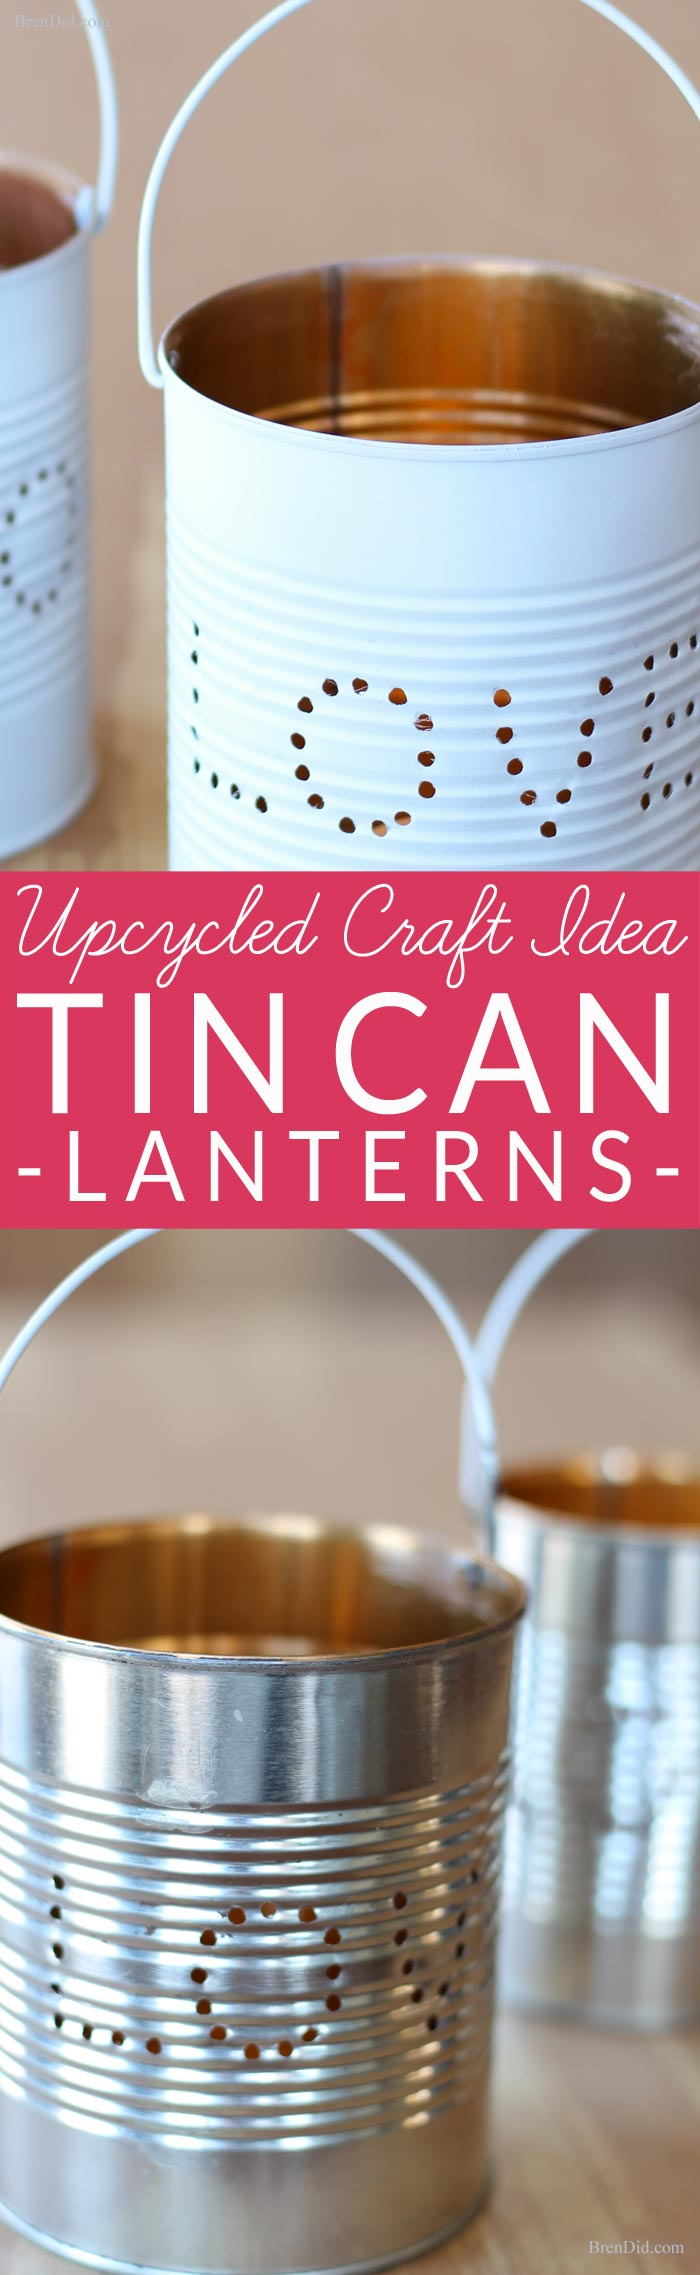 Upcycled Craft Ideas for Valentines Day. Learn how to make an adorable tin lantern from an upcycled tin can! These easy DIY lanterns are made from just two recycled craft supplies: a tin can and a wire coat hanger. Perfect for rustic wedding, Valentines Day or a romantic décor. The Art Of Up-Cycling: repurposed tin cans to lanterns.